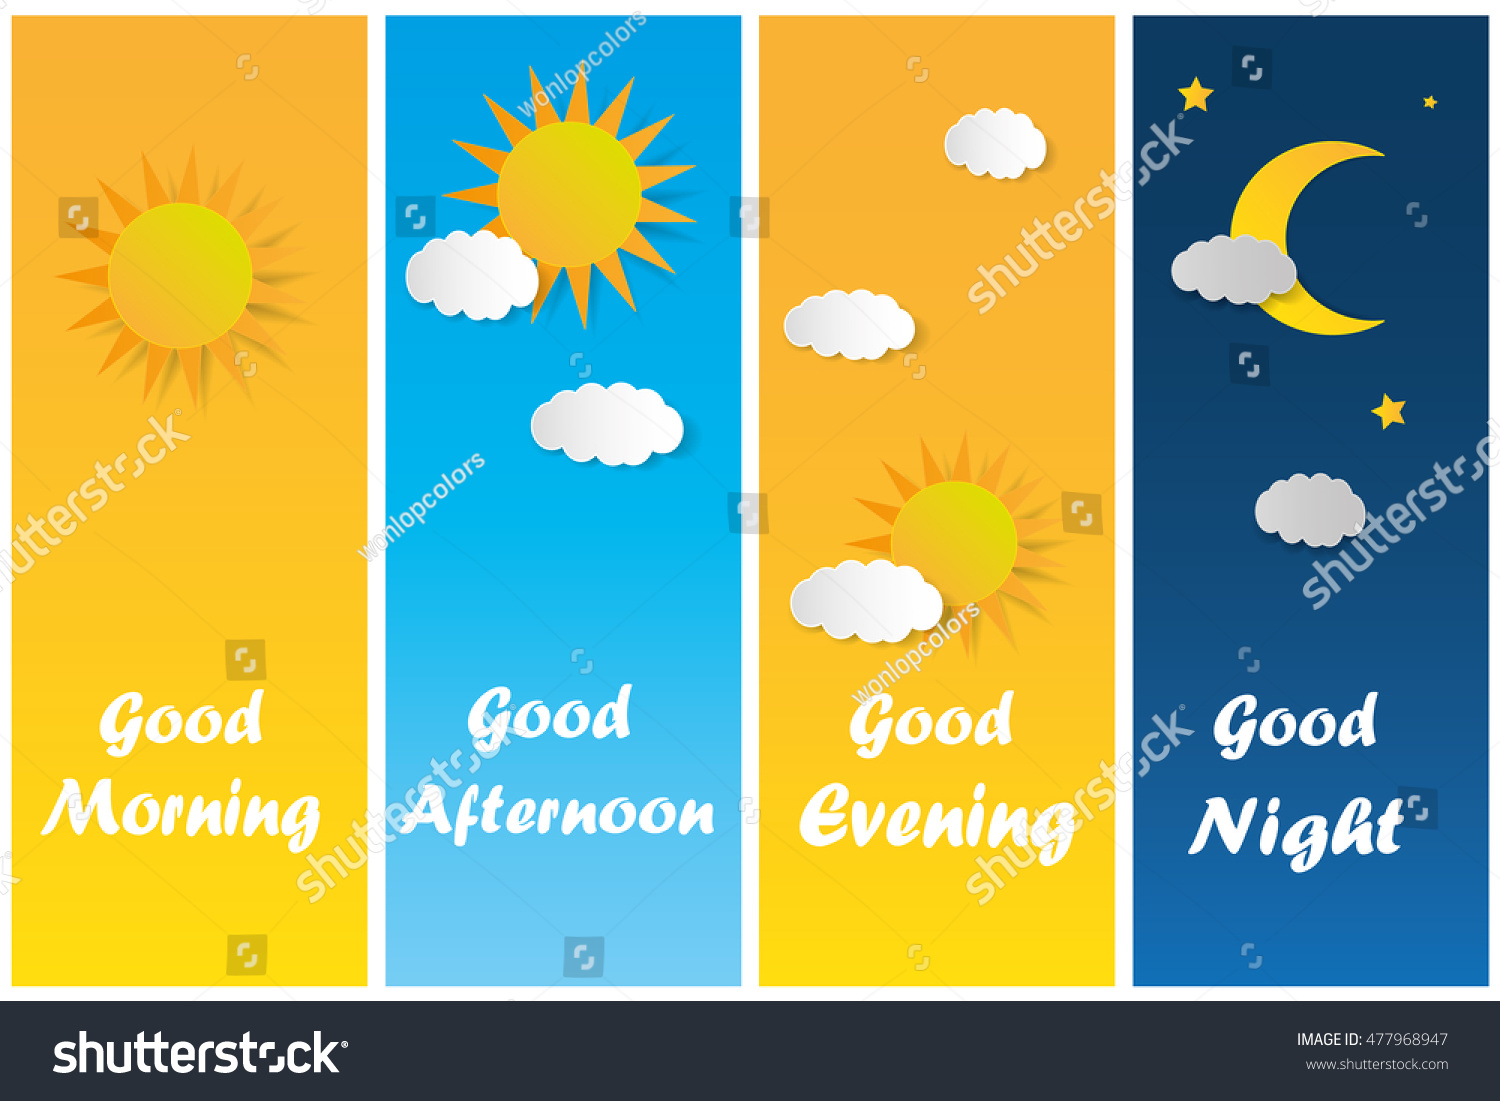 Good Morning Good Night Day Evening Stock Vector